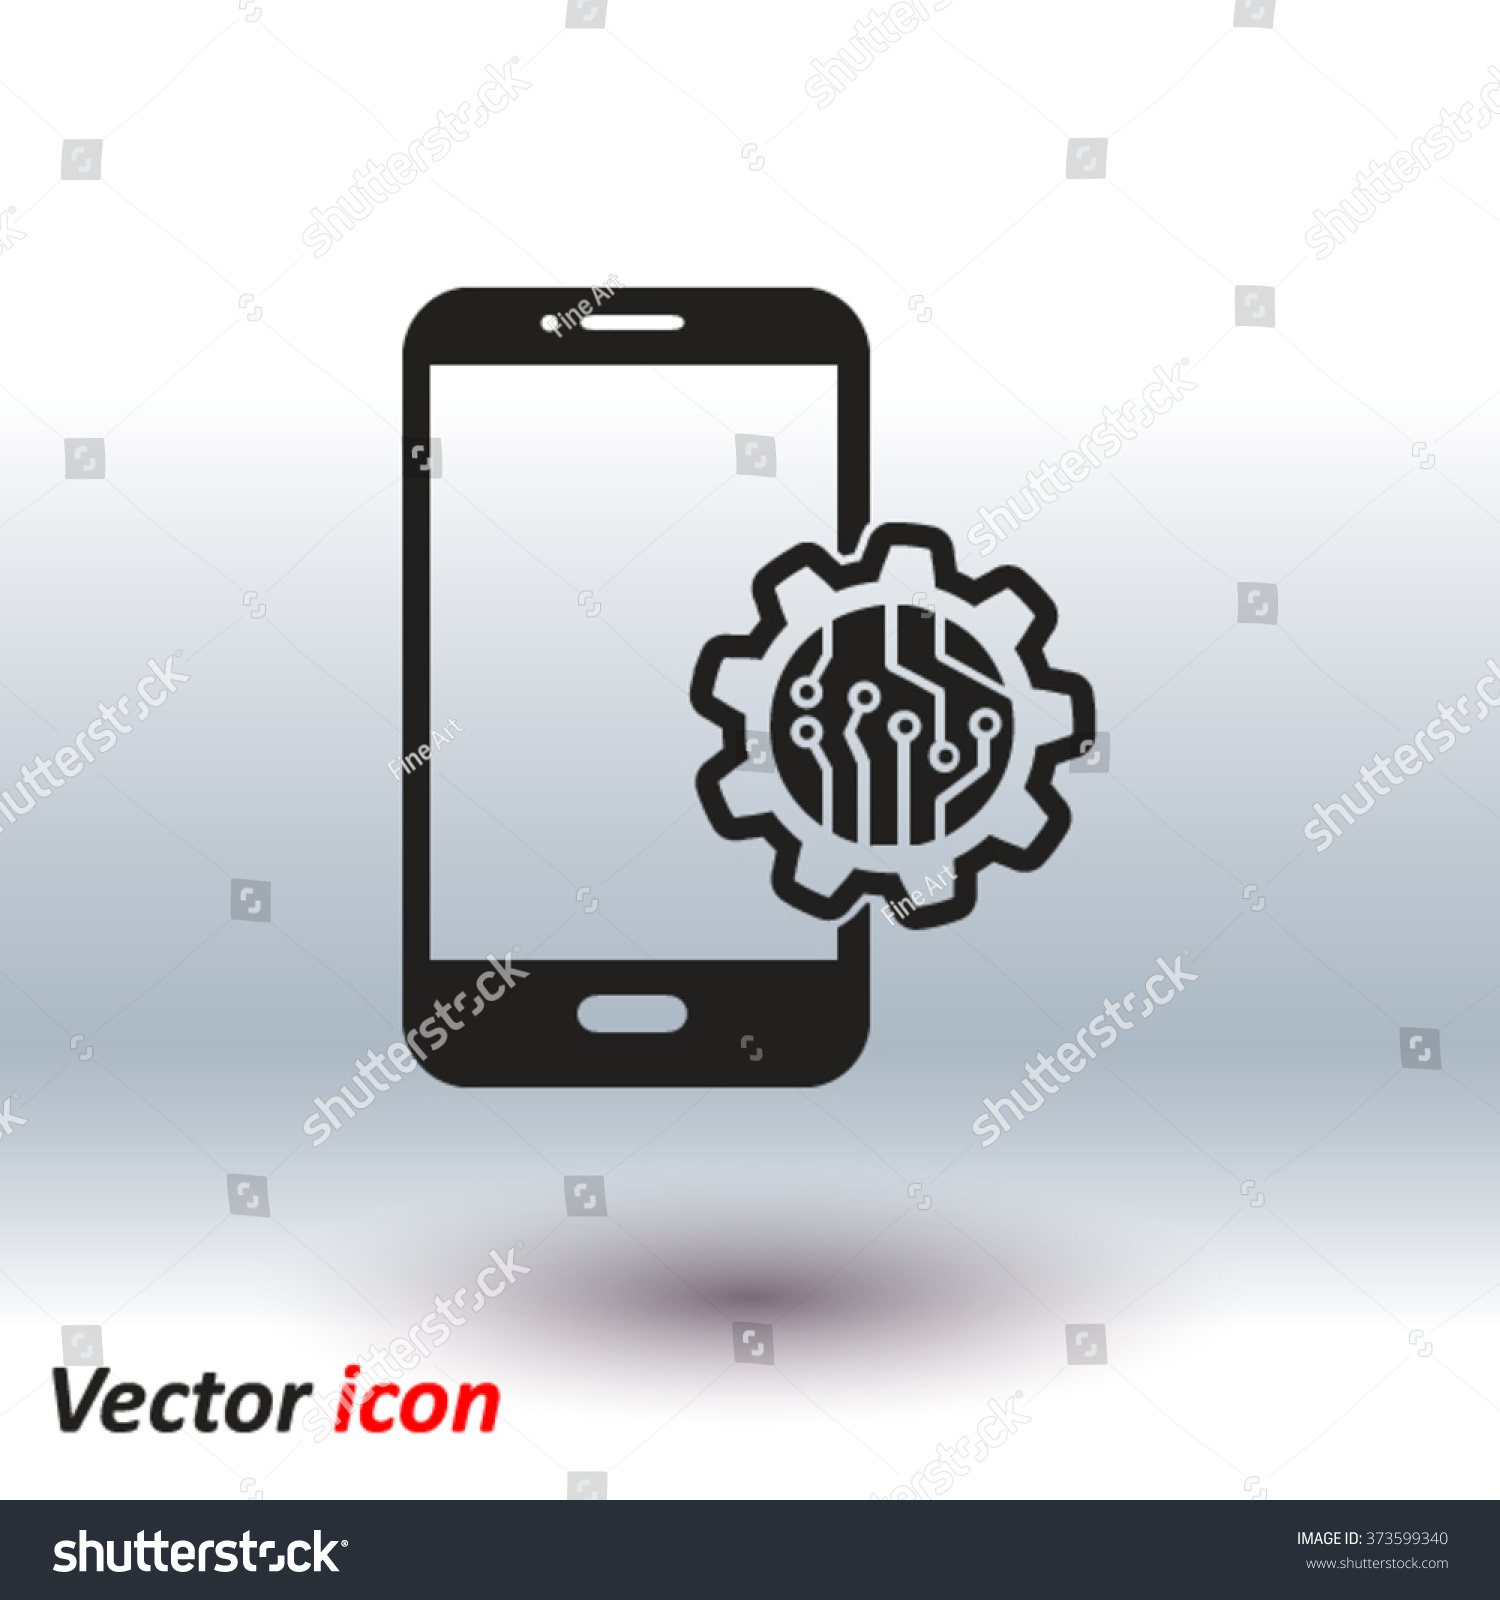 Electronic Circuit Technological Device Technology Scheme Stock Symbols Vector Of Square Symbol